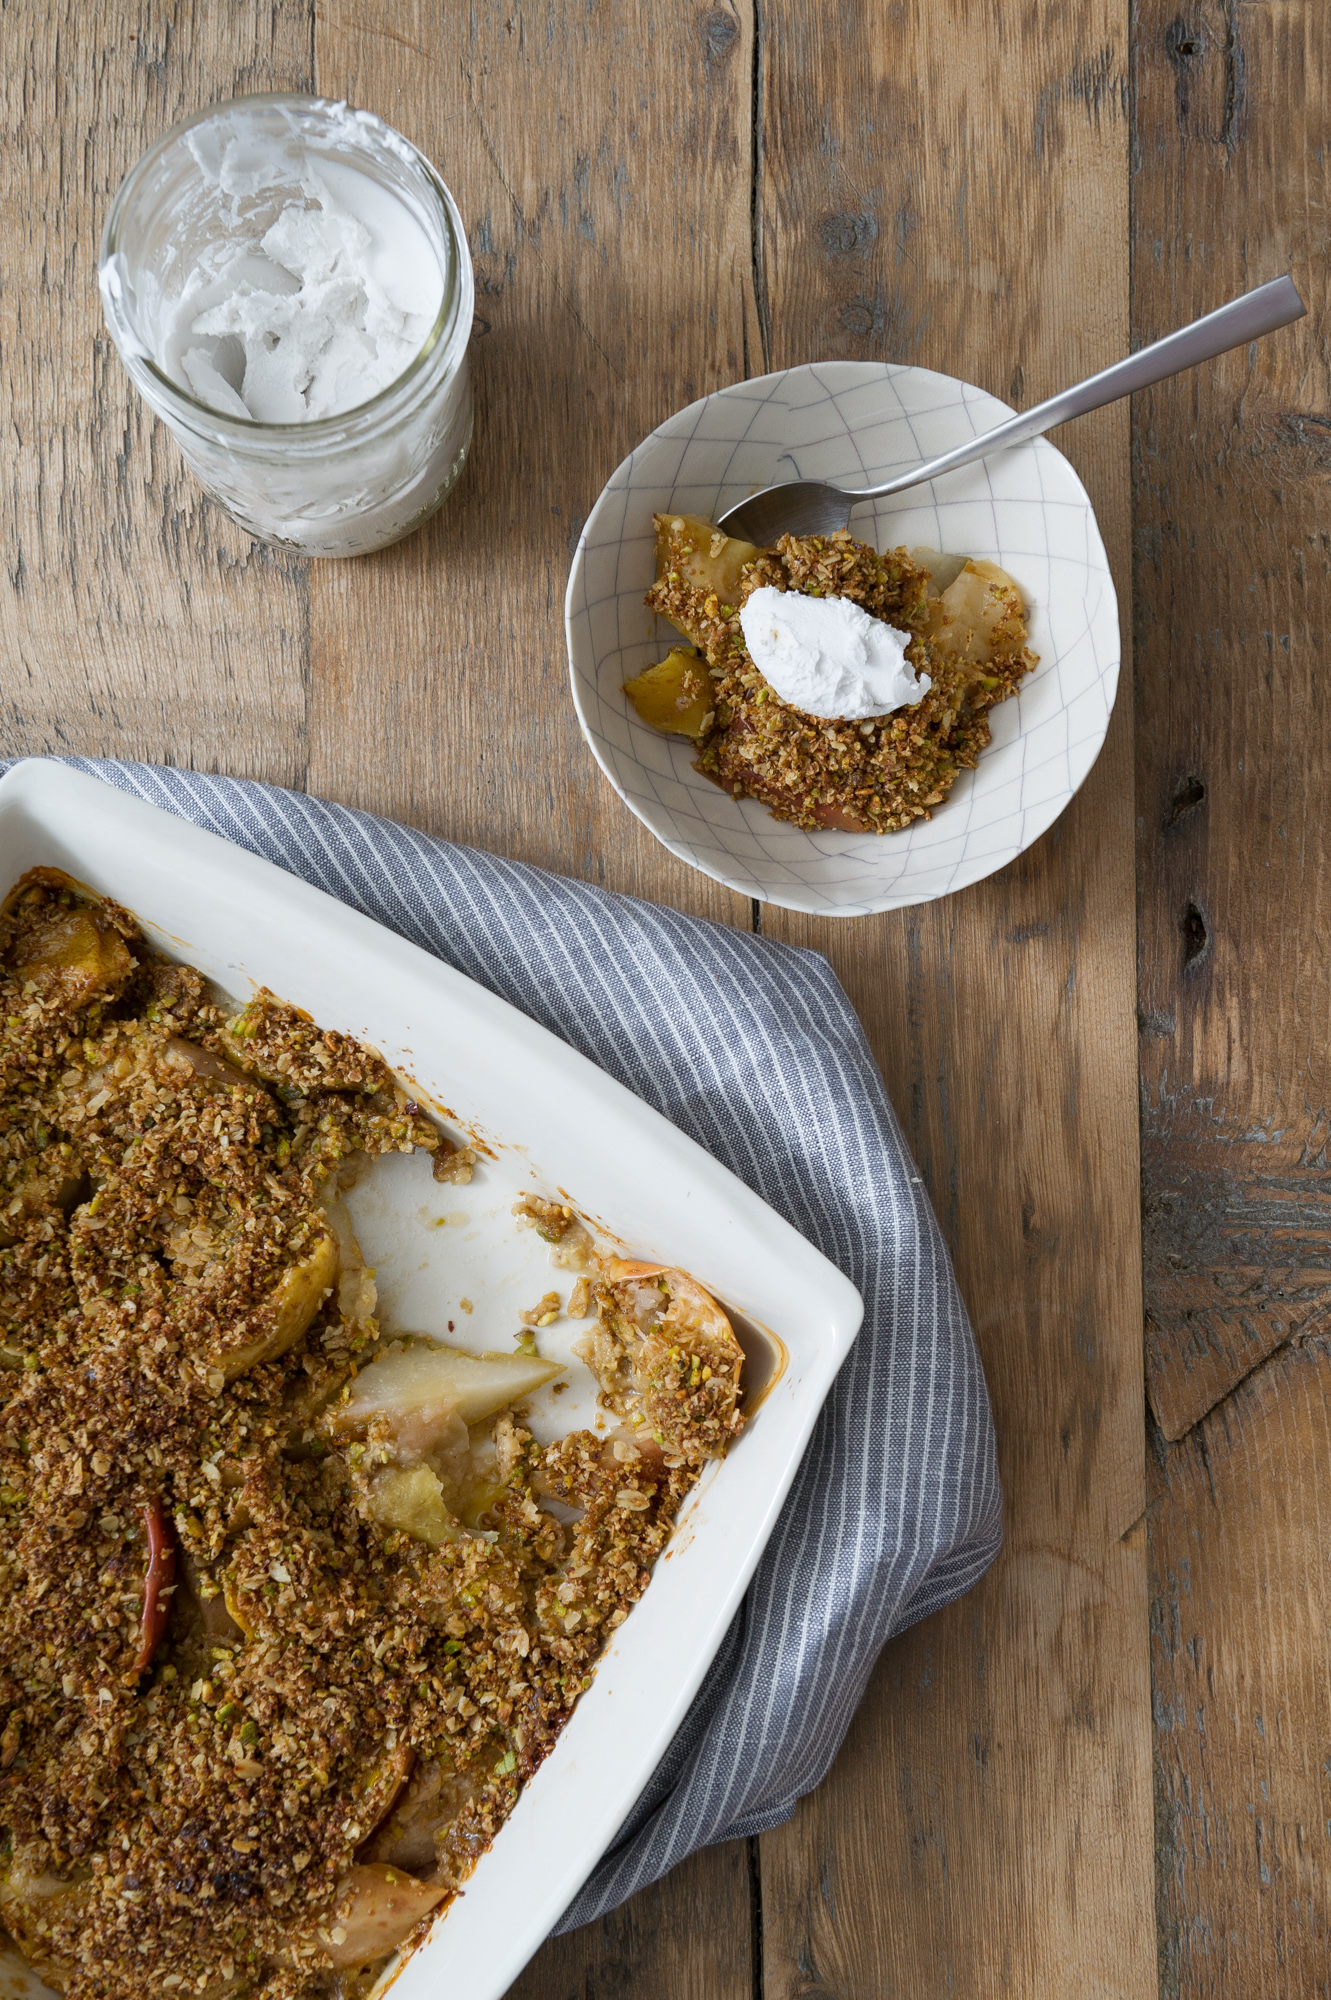 Ginger Apple and Pears with a Pistachio & Cardamom Crumble